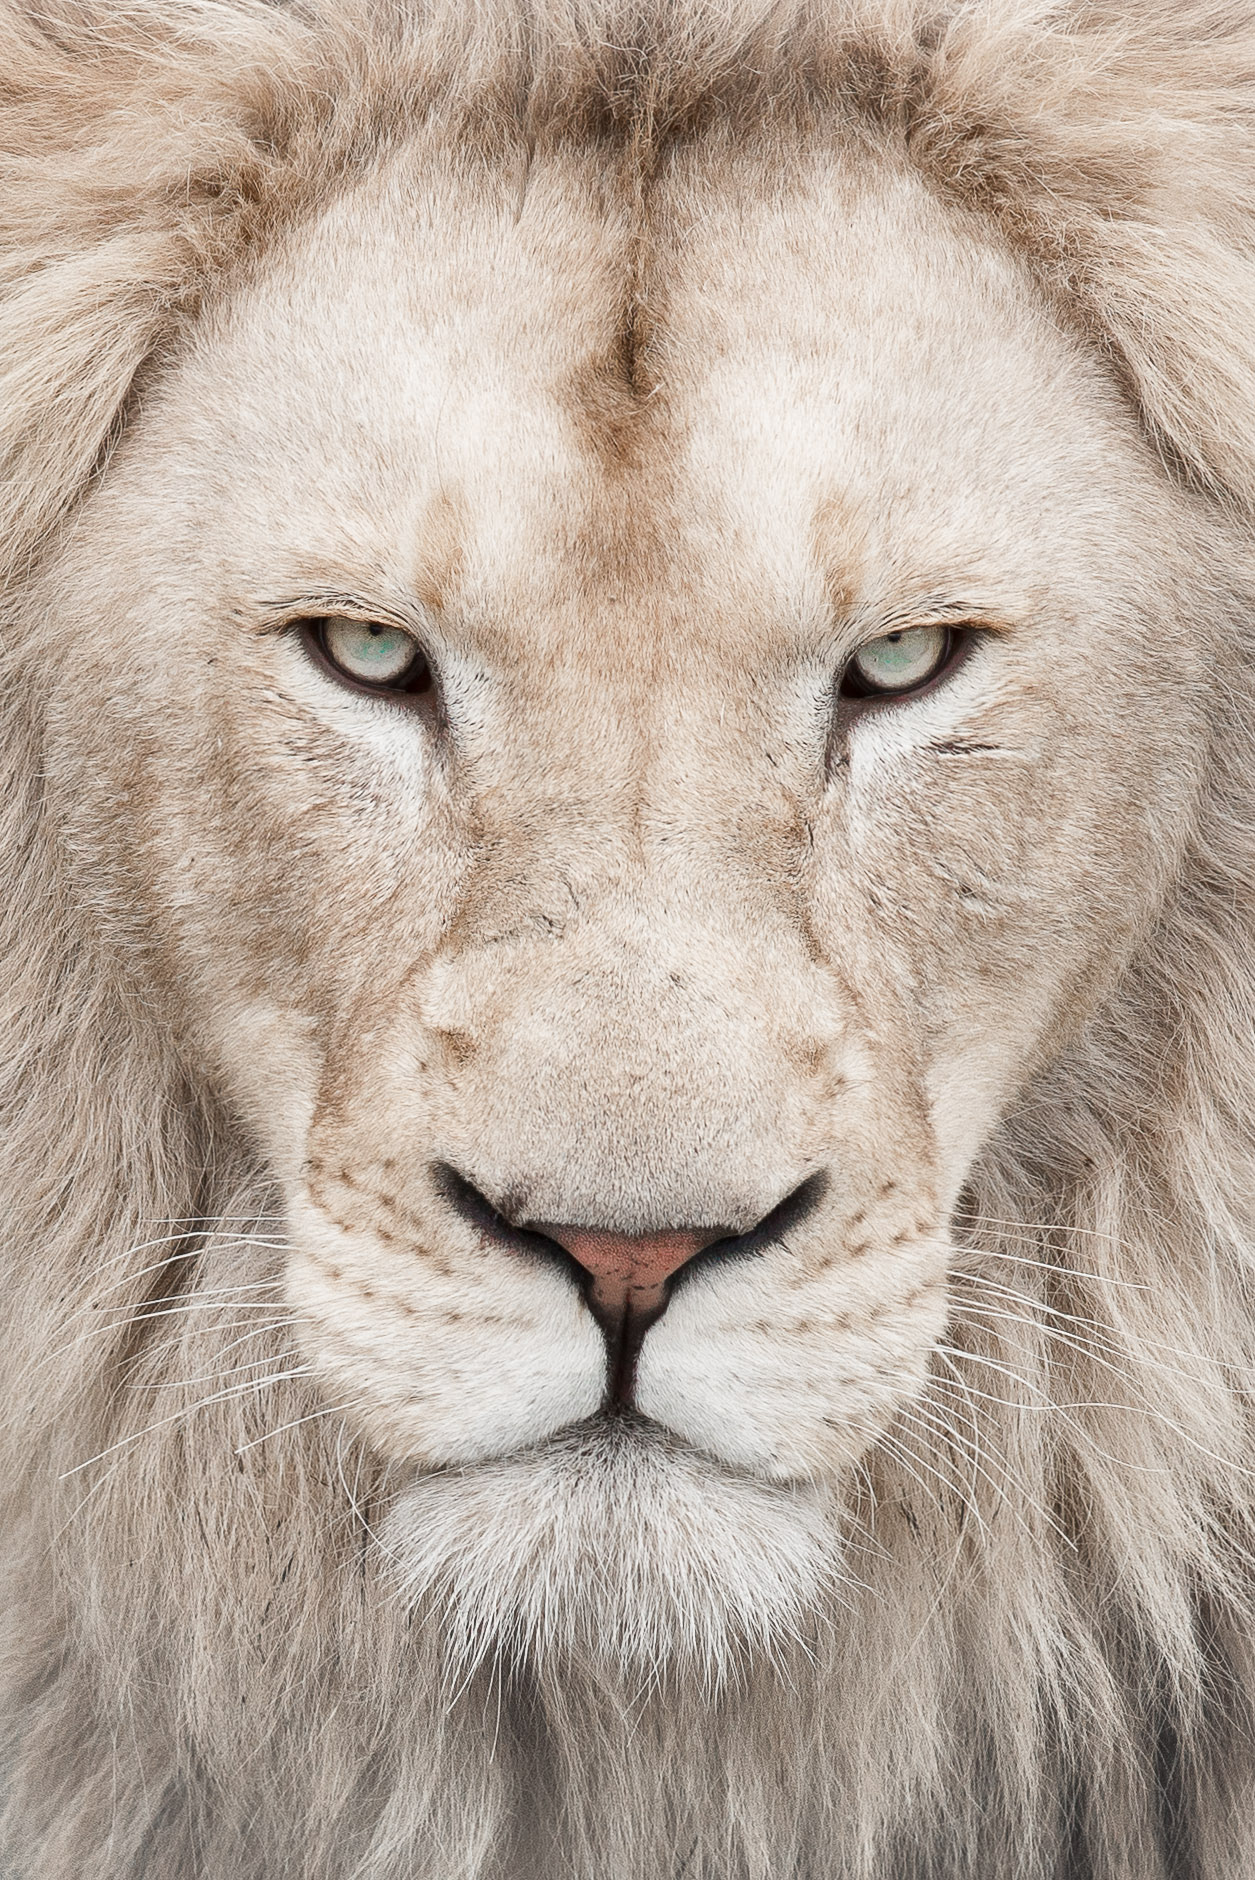 White Lion Wallpapers High Quality Download Free